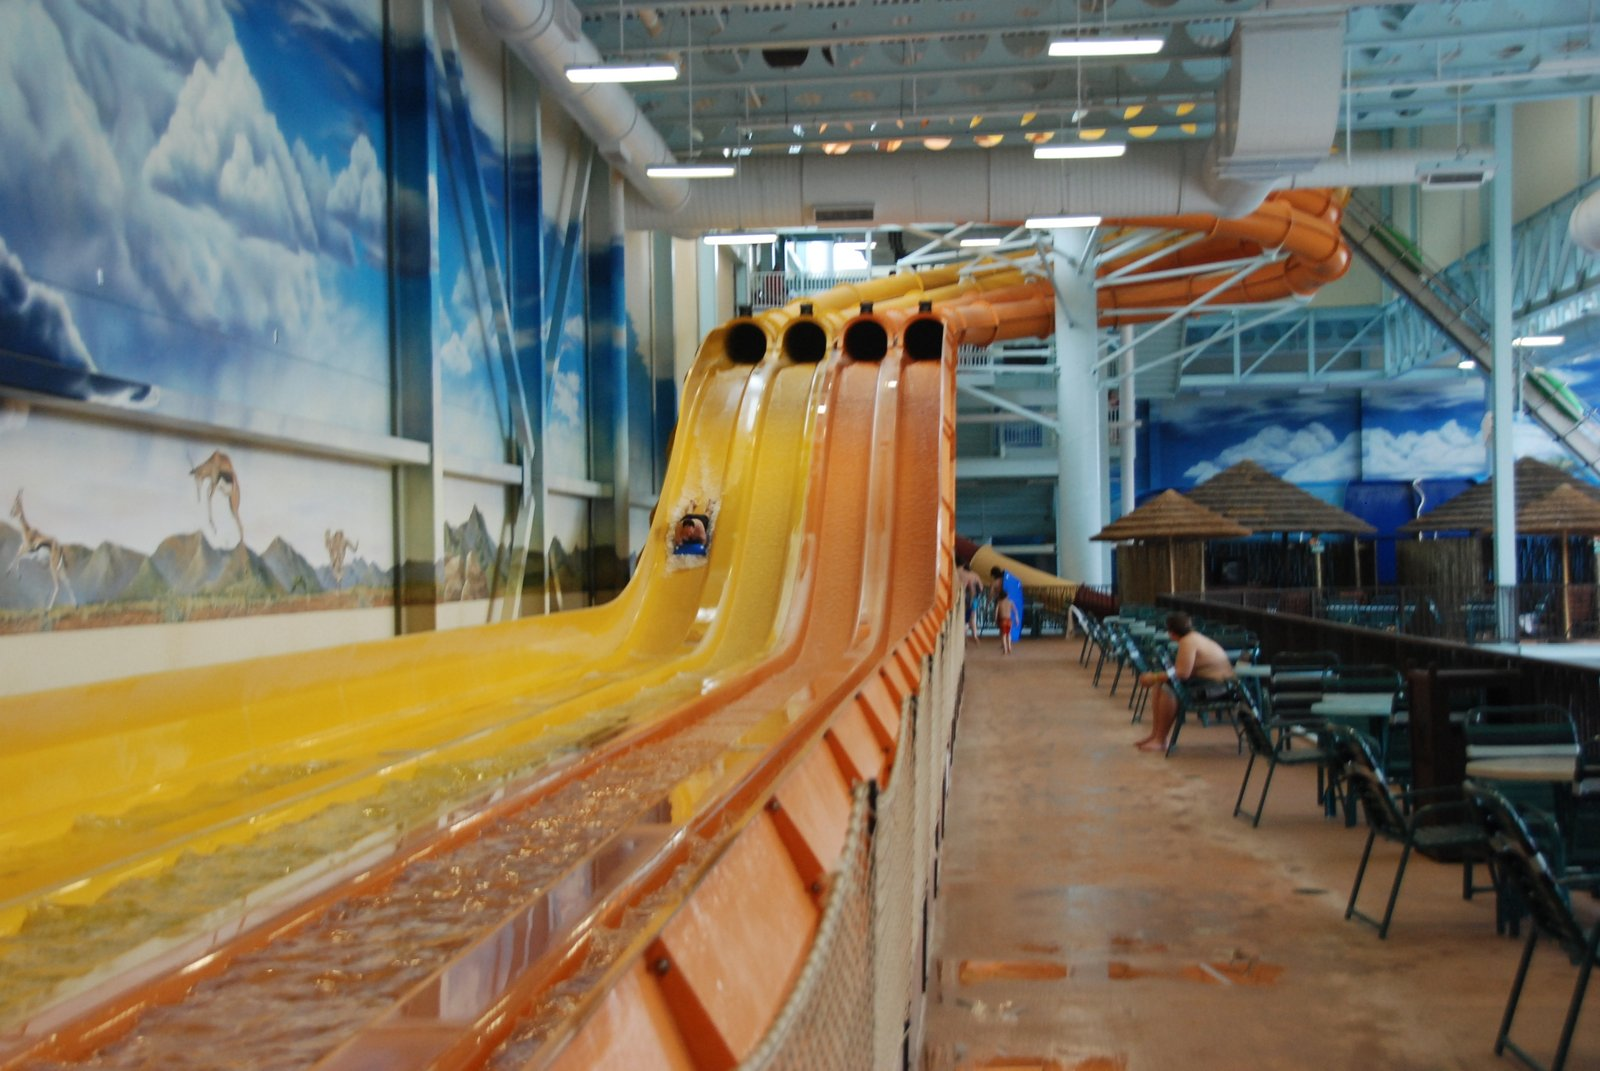 indoor slides at the kalahari (see the @waterparks360 profile of